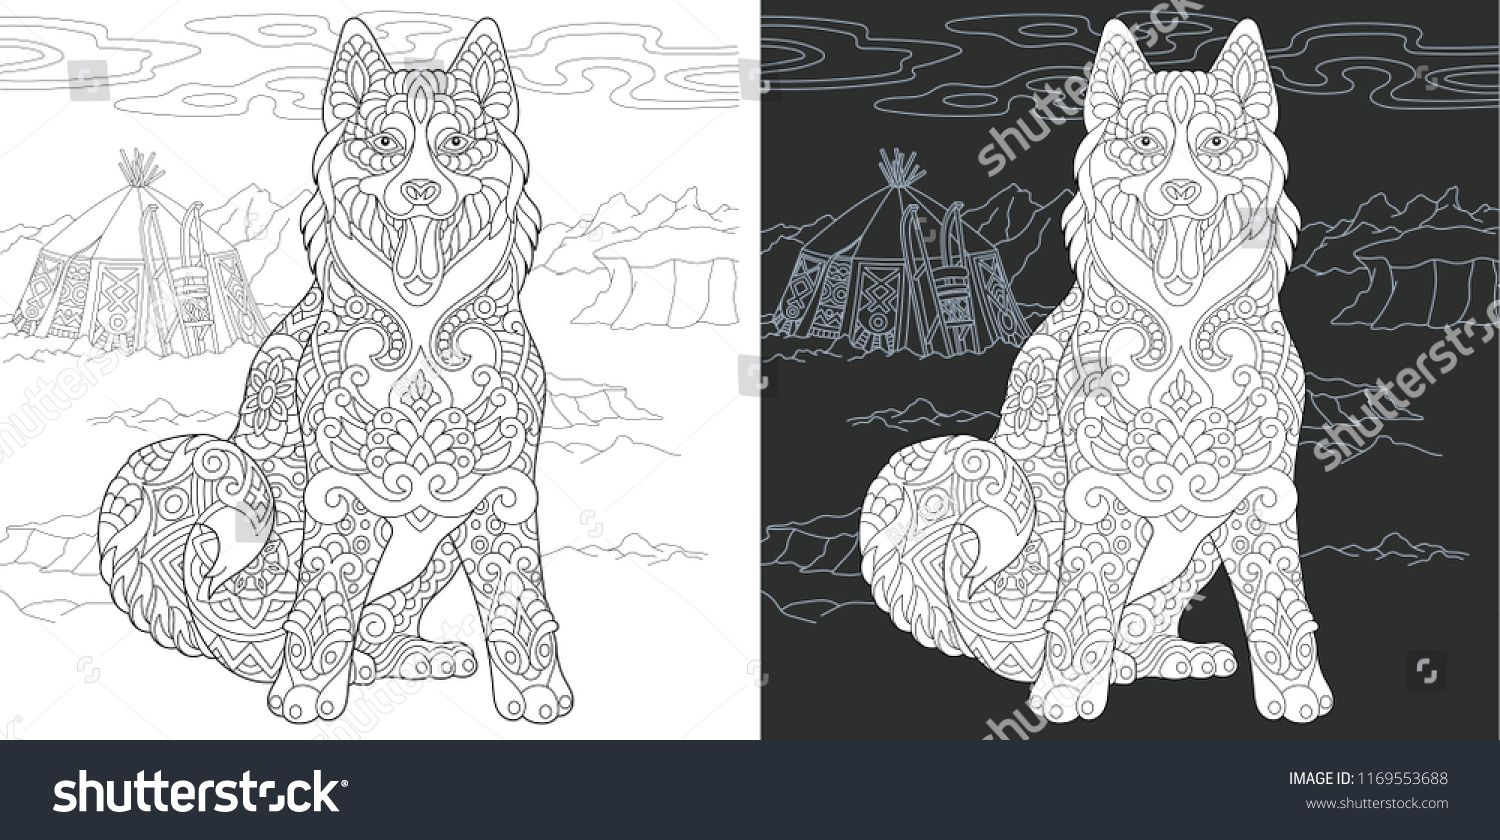 Coloring Page Coloring Book Colouring Picture With Husky Dog Drawn In Zentangle S Dog Coloring Page Coloring Pictures Of Animals Valentines Day Coloring Page [ 840 x 1500 Pixel ]